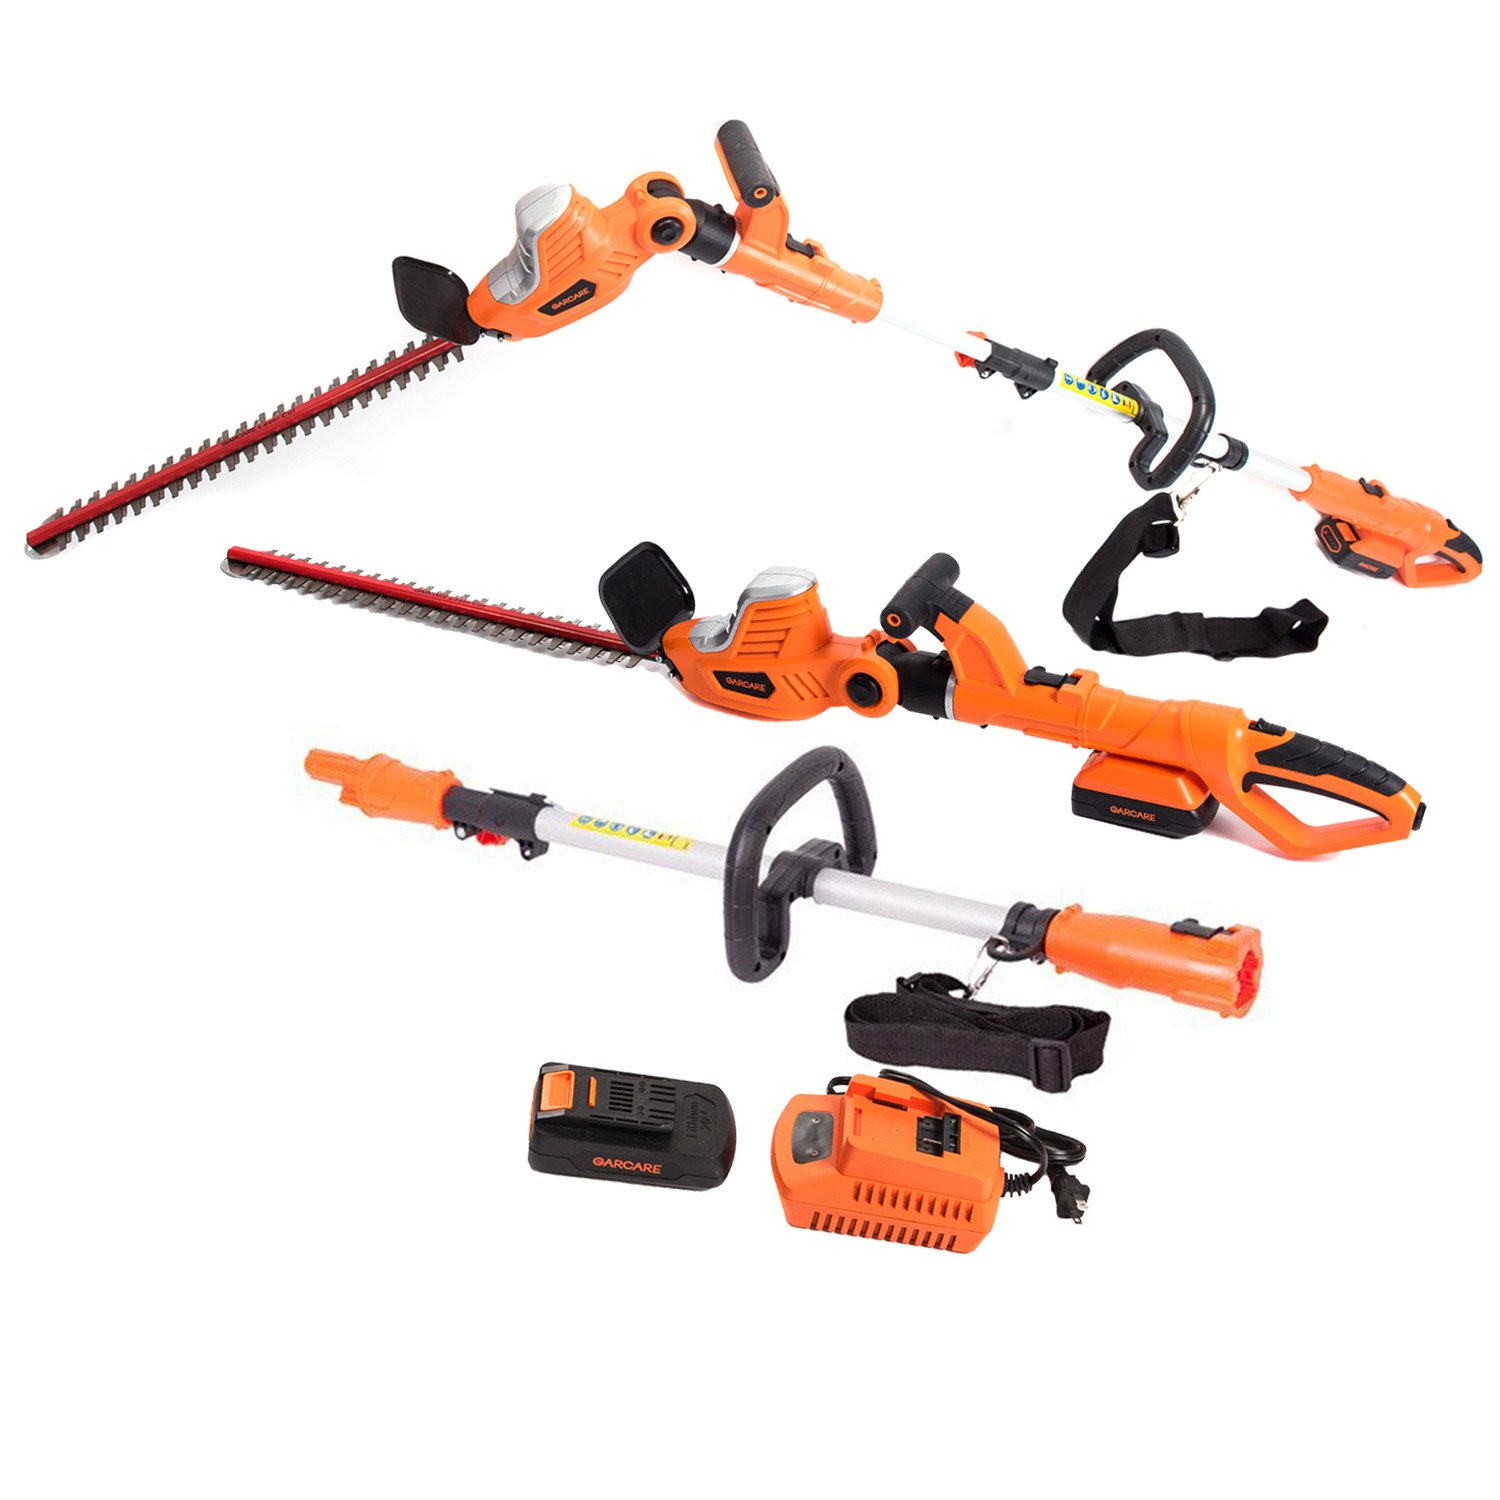 GARCARE 20V Li-ion Cordless 2 in 1 Pole and Portable Hedge Trimmer with 20-Inch Laser Blade